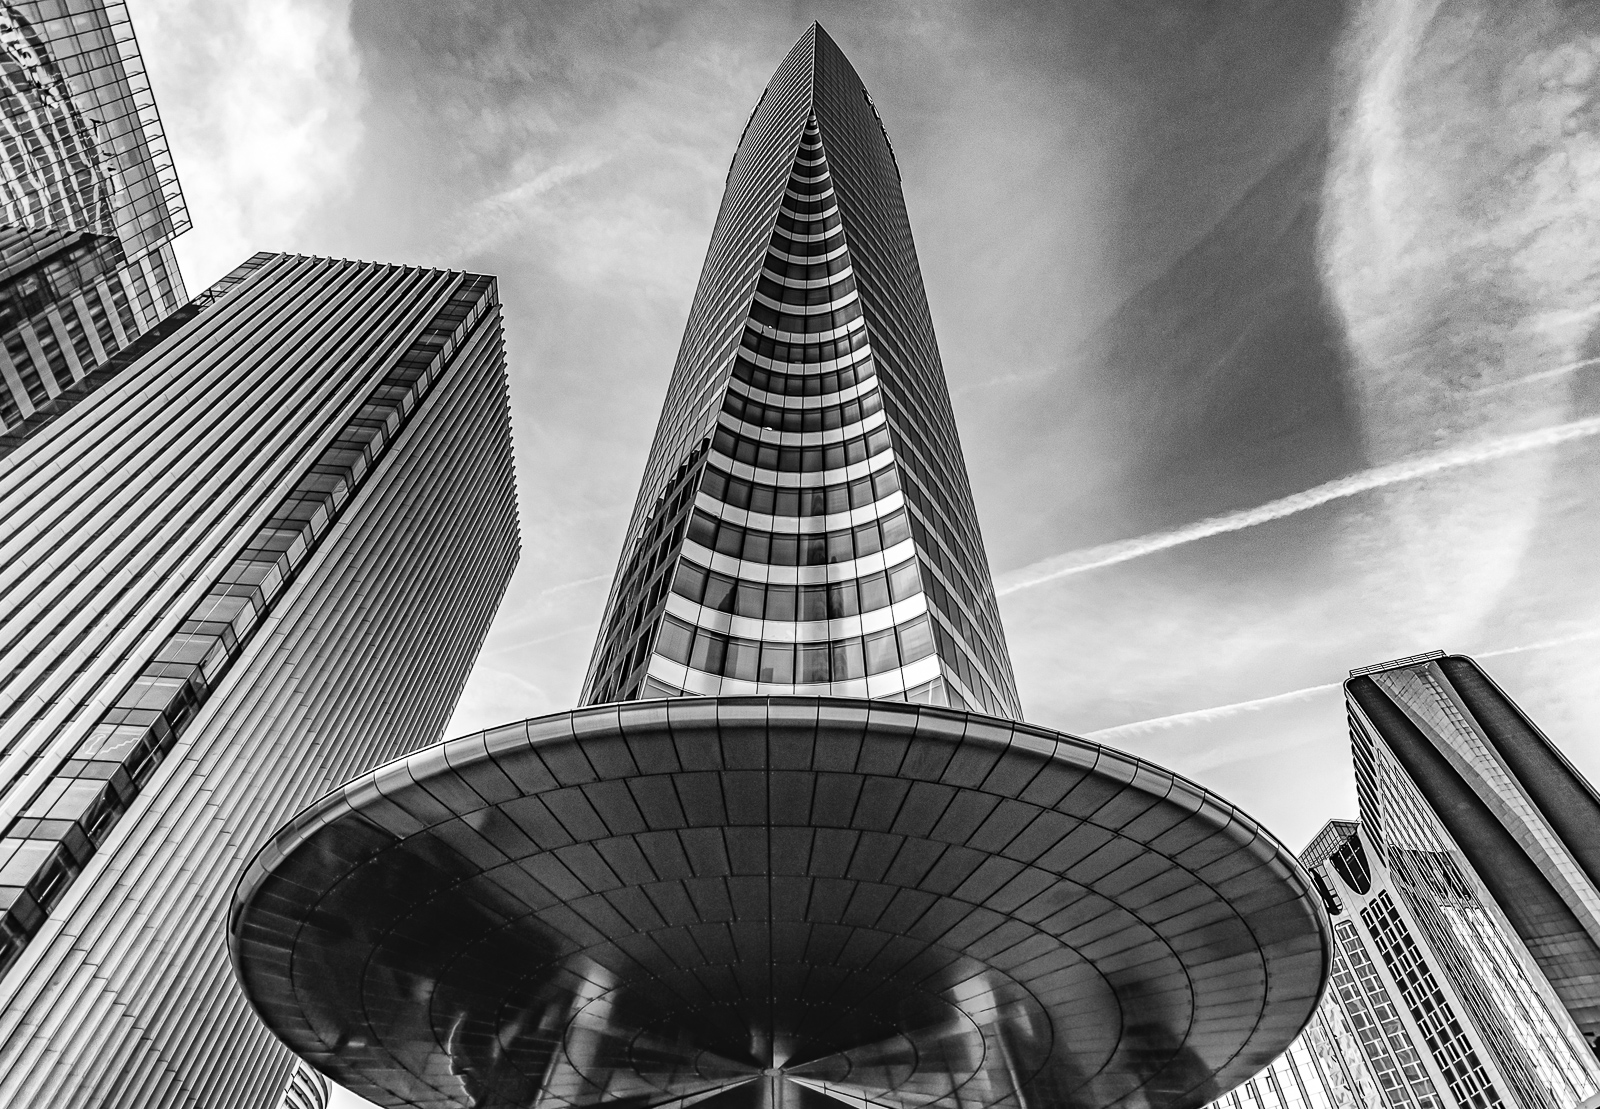 la defense 02022014 0010-Modifier-Modifier-2.jpg